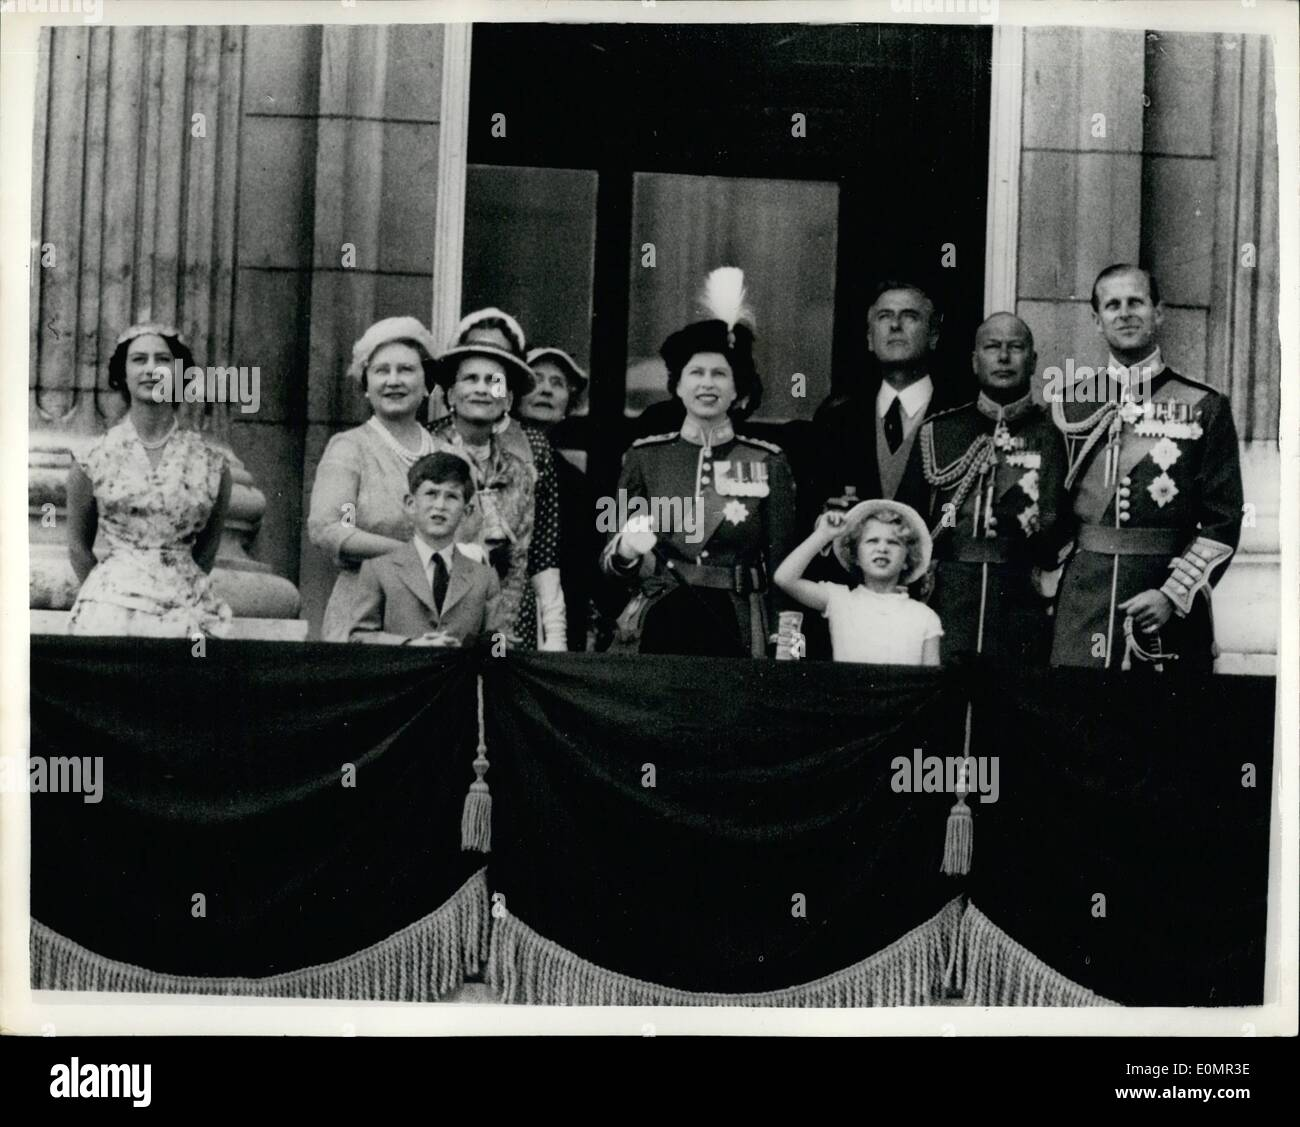 May 05, 1956 - Royals watch the fly-past: H.M. The Queen took the salute from teh balcony of Buckingham Palace, at today's fly-past of 18 four-engined Shackleton long-range maritime aircraft of R.A.F. Coastal Command, to mark her Majesty's official birthday. The fly-past followed the traditional Trooping the Colour ceremony on Horse Guards Parade. Photo shows seen watching the fly-past on the balcony of Buckingham Palace are, from left; Princess Margaret, the Queen Mother; The Duchess of Gloucester; Queen Elizabeth; Earl Mountbatten - Stock Image